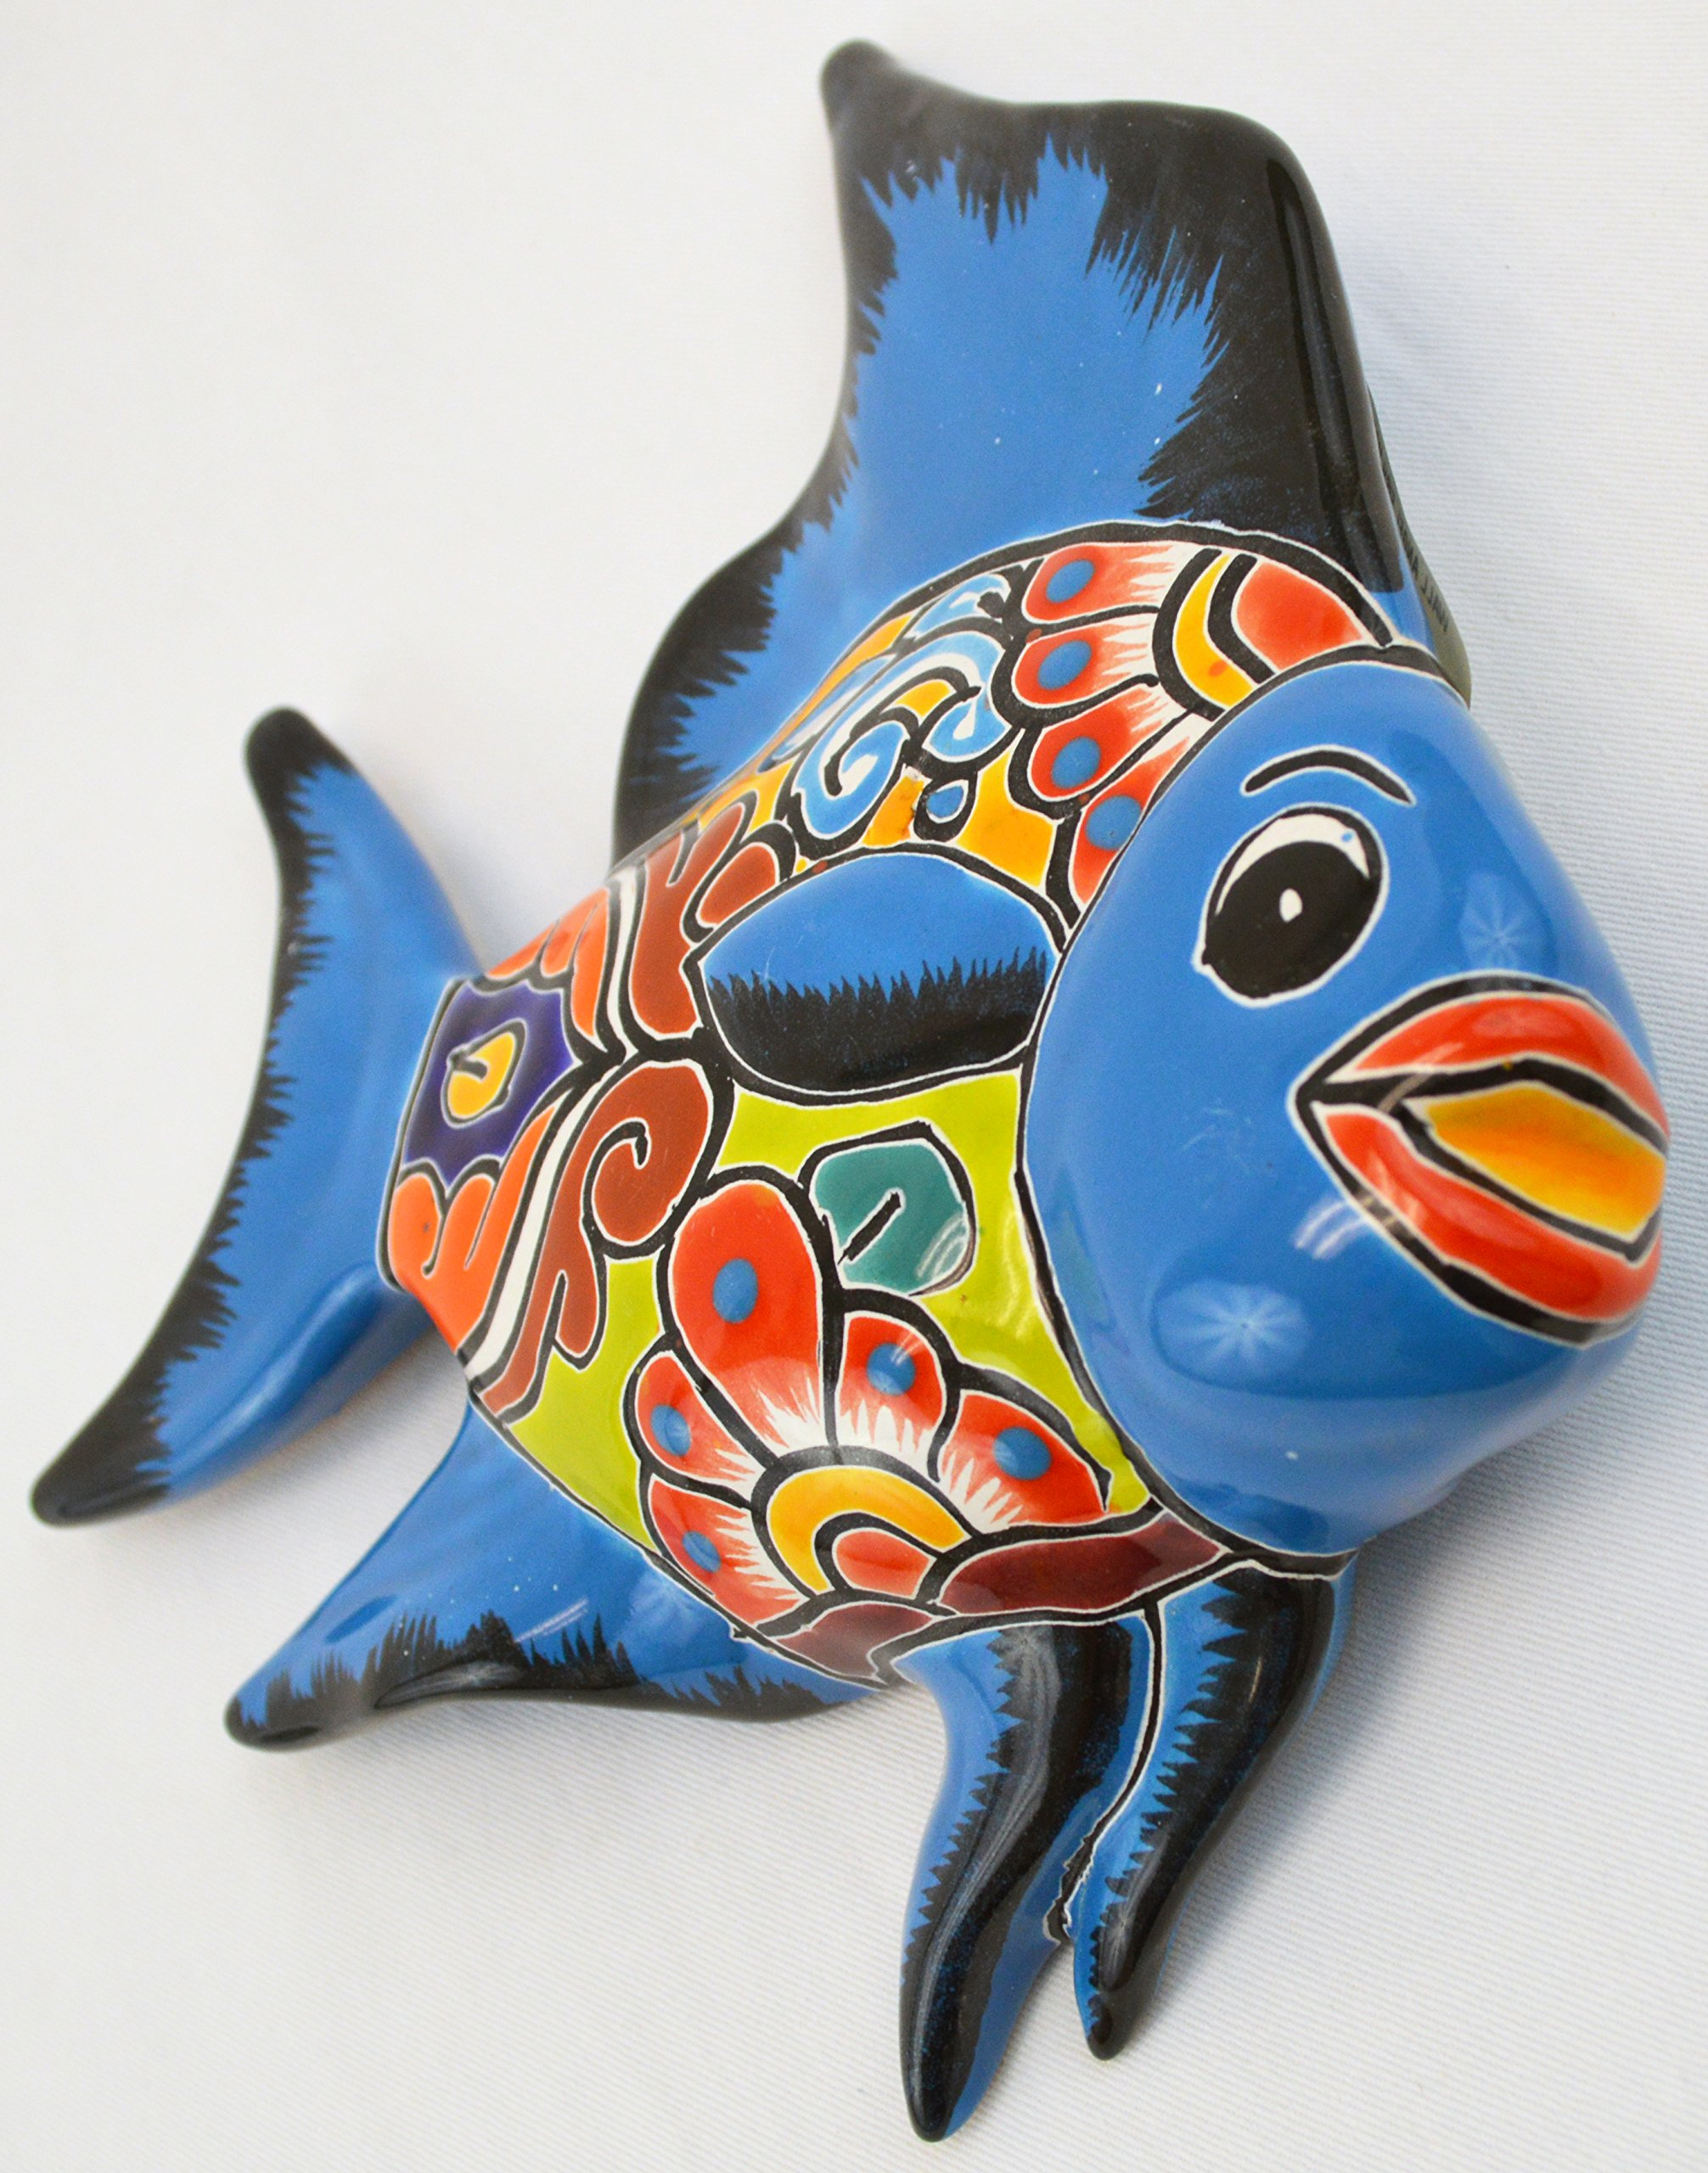 Avera Products Talavera Wall Angel Fish 8x11 Hand Painted Ceramic Garden Decor (Turquoise) by Avera Products (Image #2)